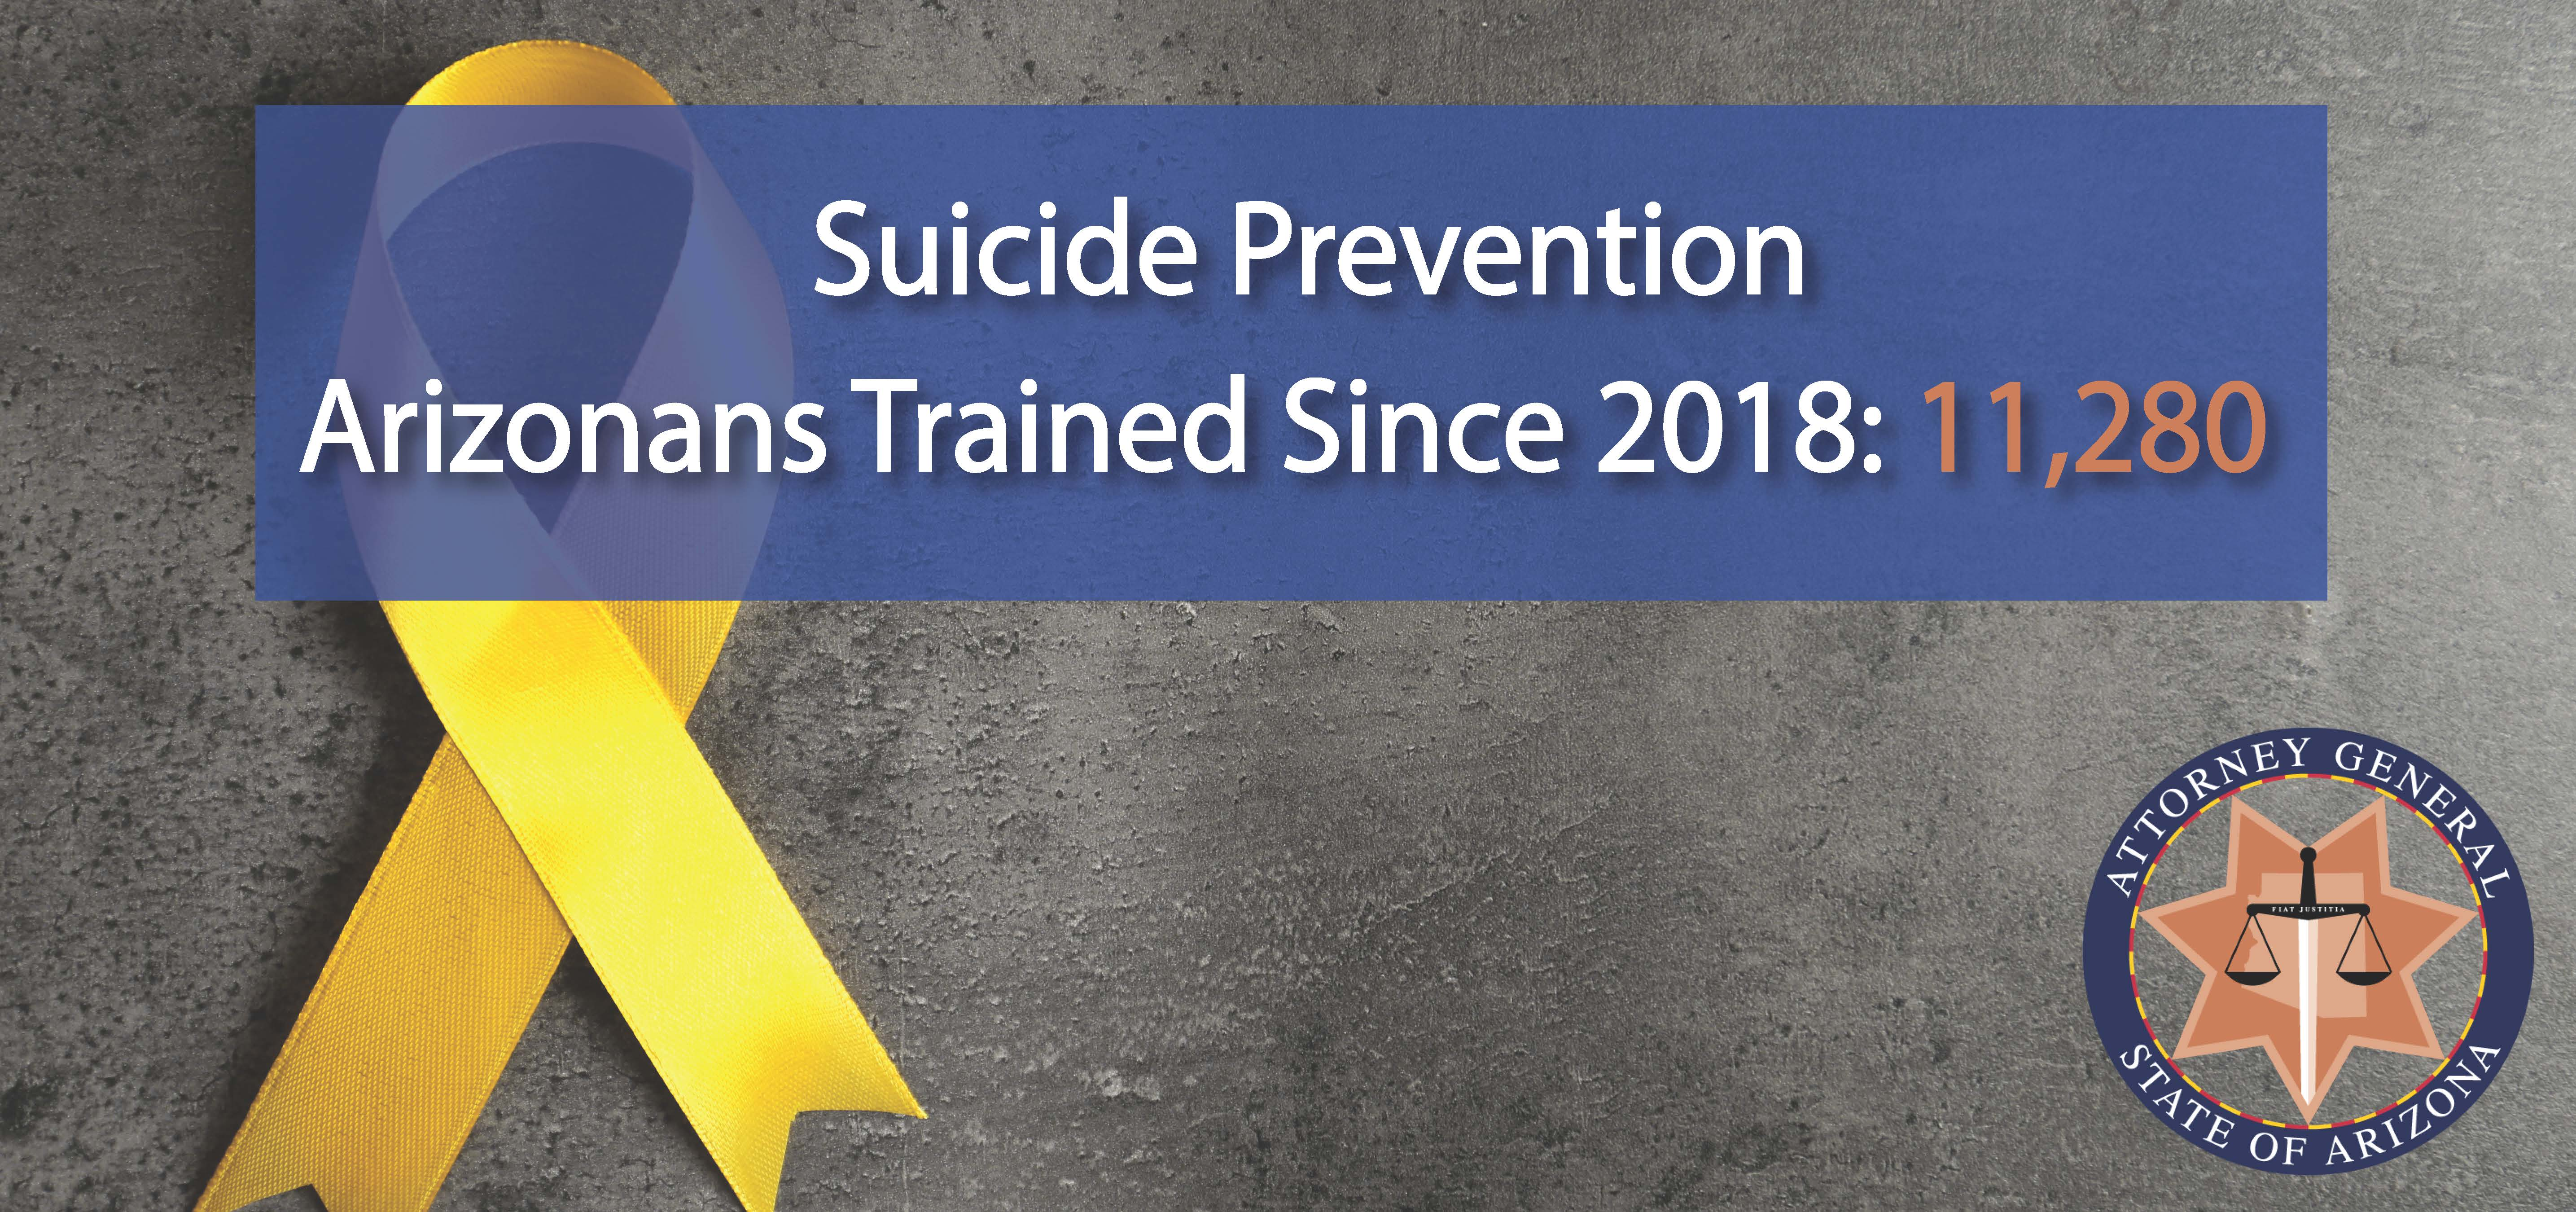 Banner informing that over 10,000 Arizonans have received Suicide Prevention training.